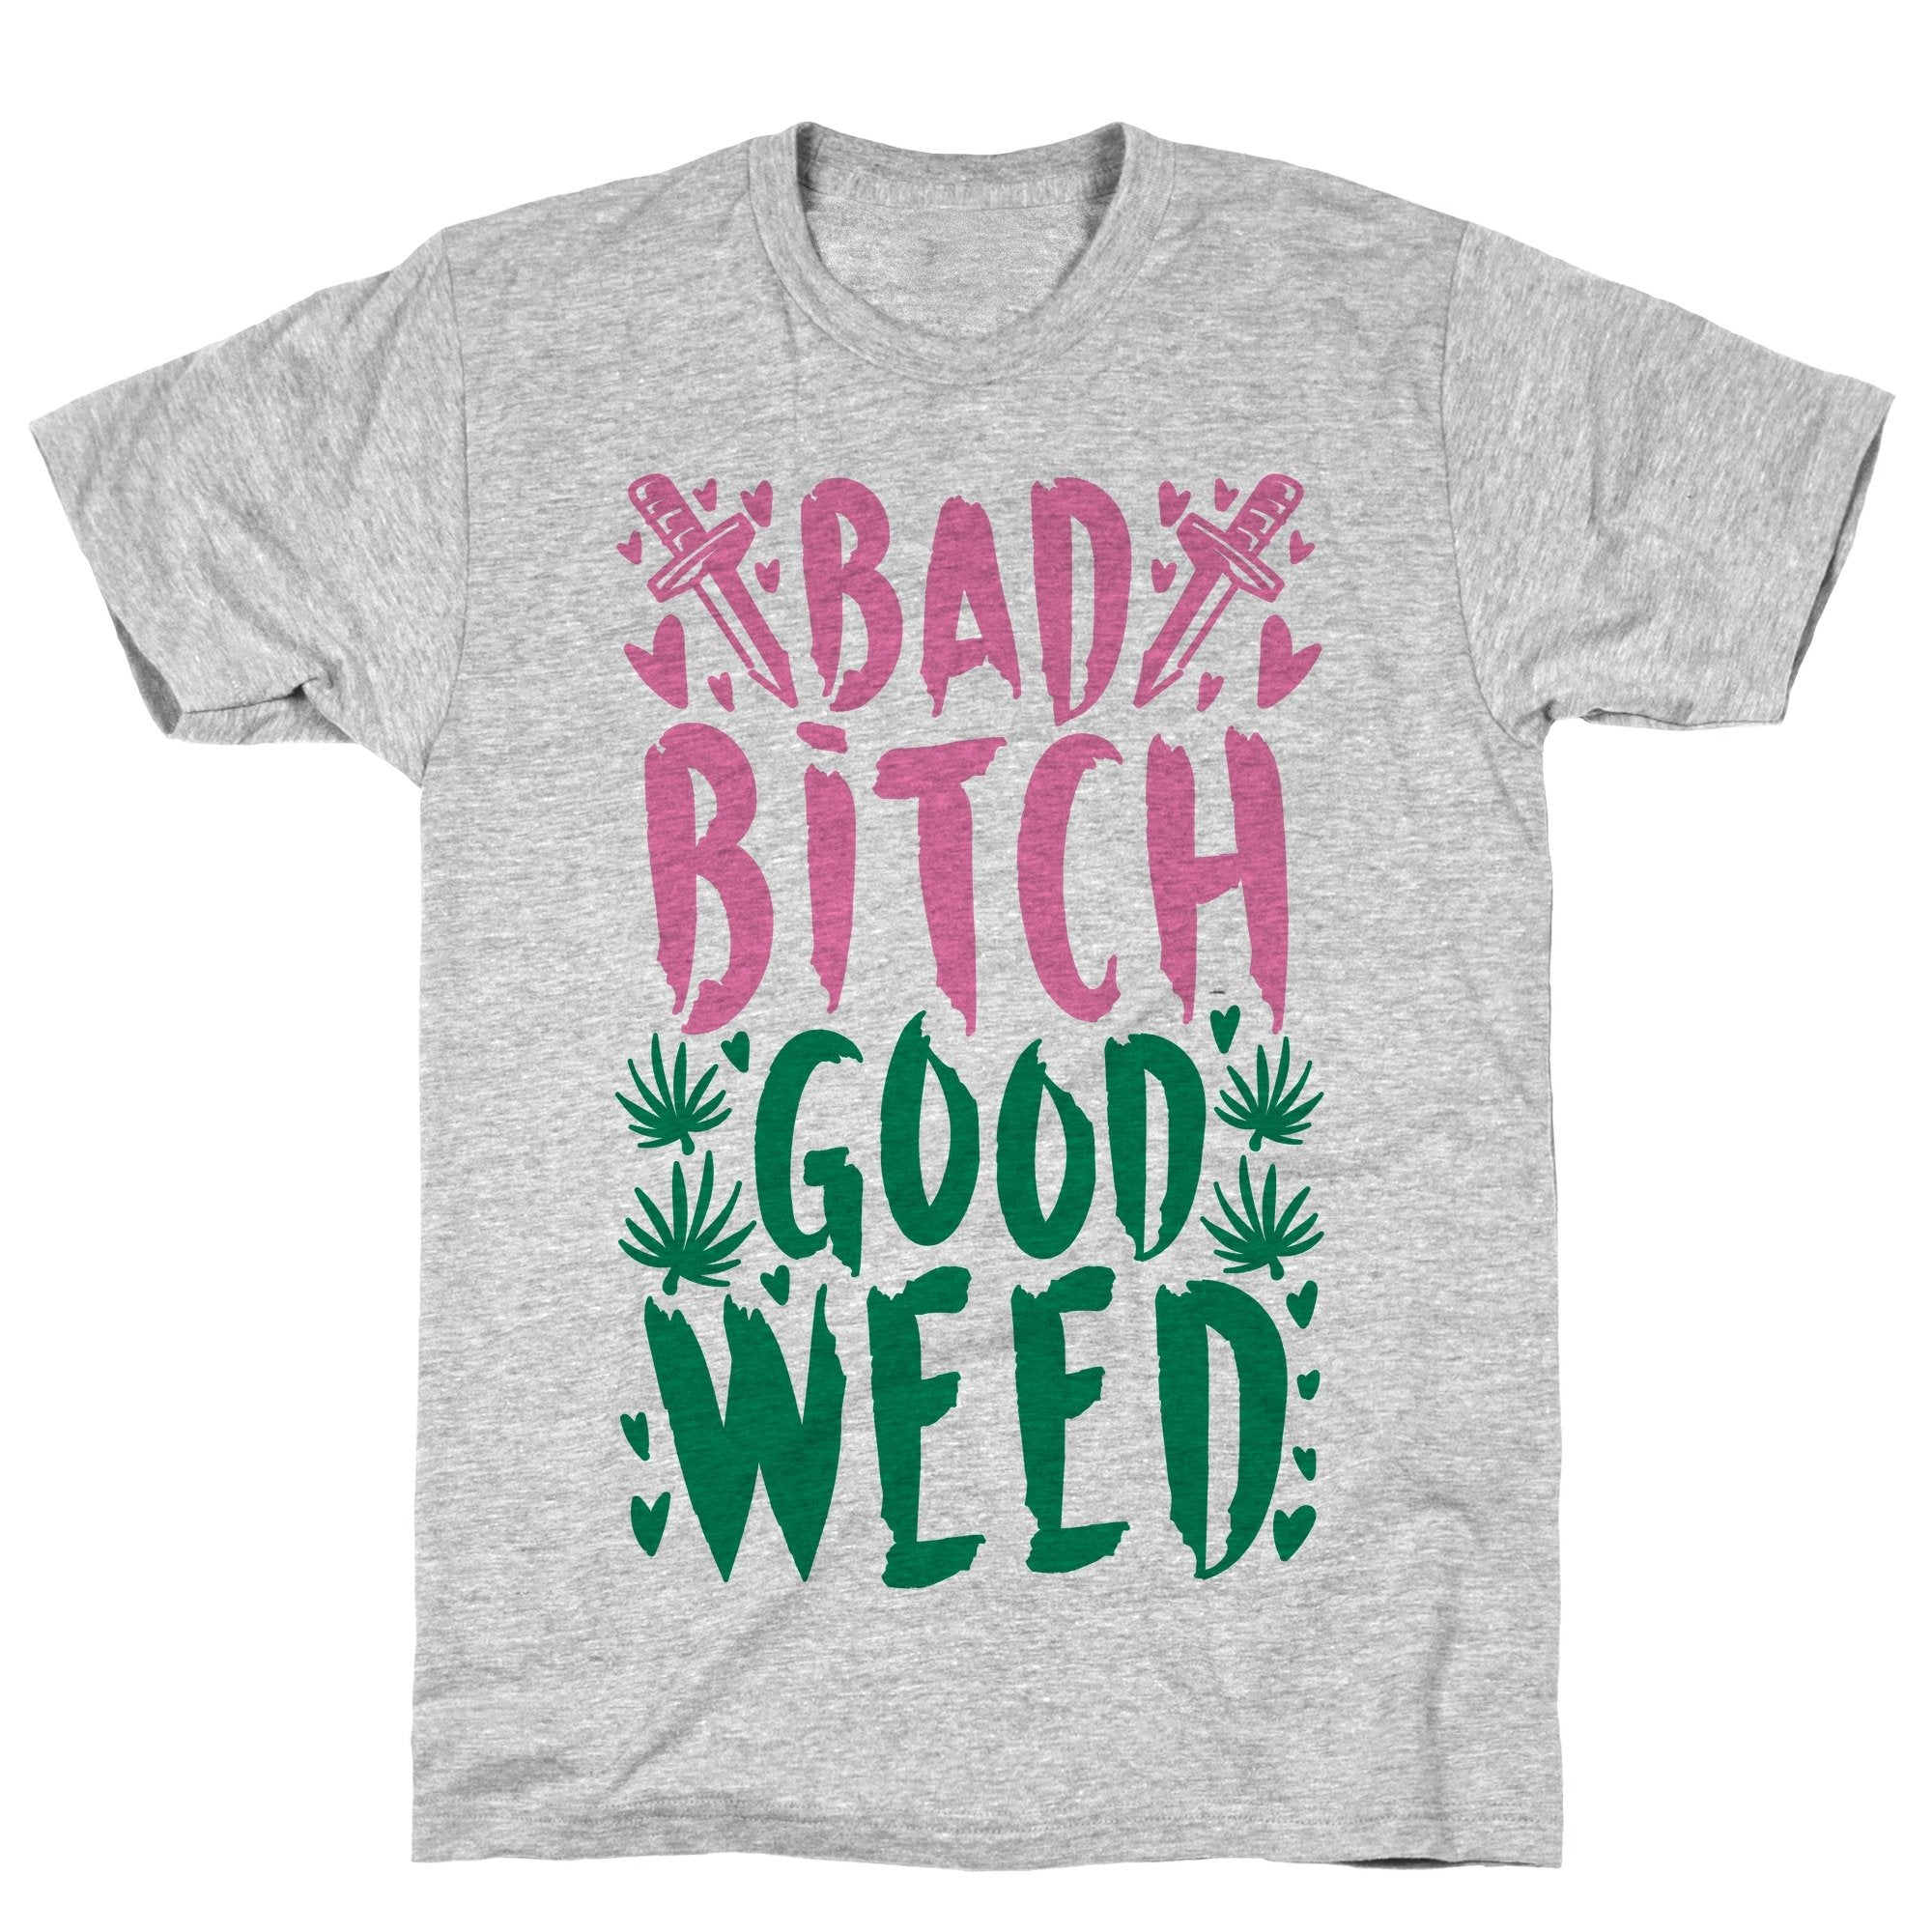 Bad Bitch Good Weed Athletic Gray Unisex Cotton Tee by LookHUMAN